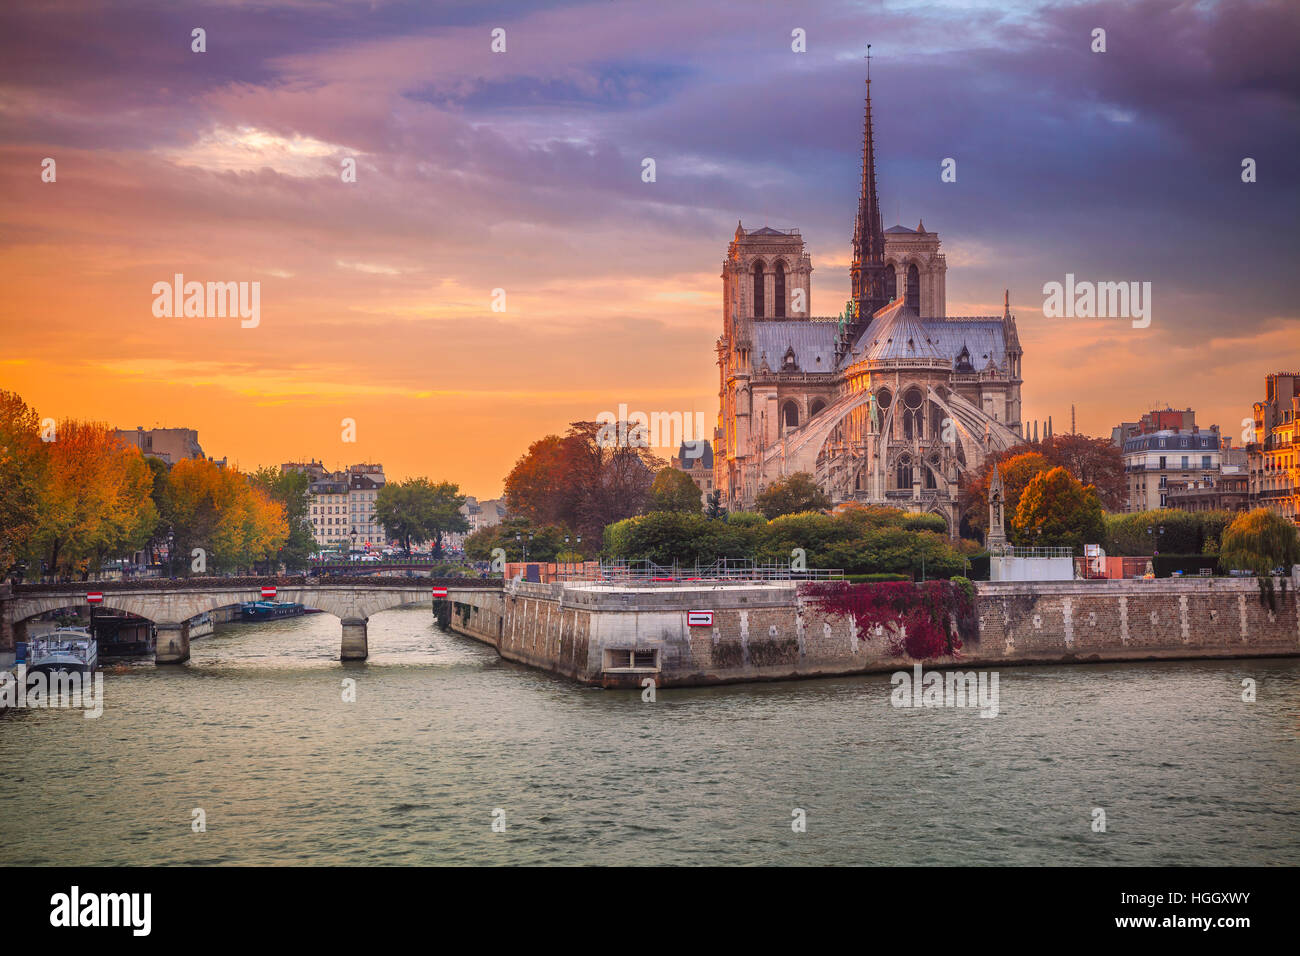 Paris. Cityscape image of Paris, France with the Notre Dame Cathedral during sunset. - Stock Image